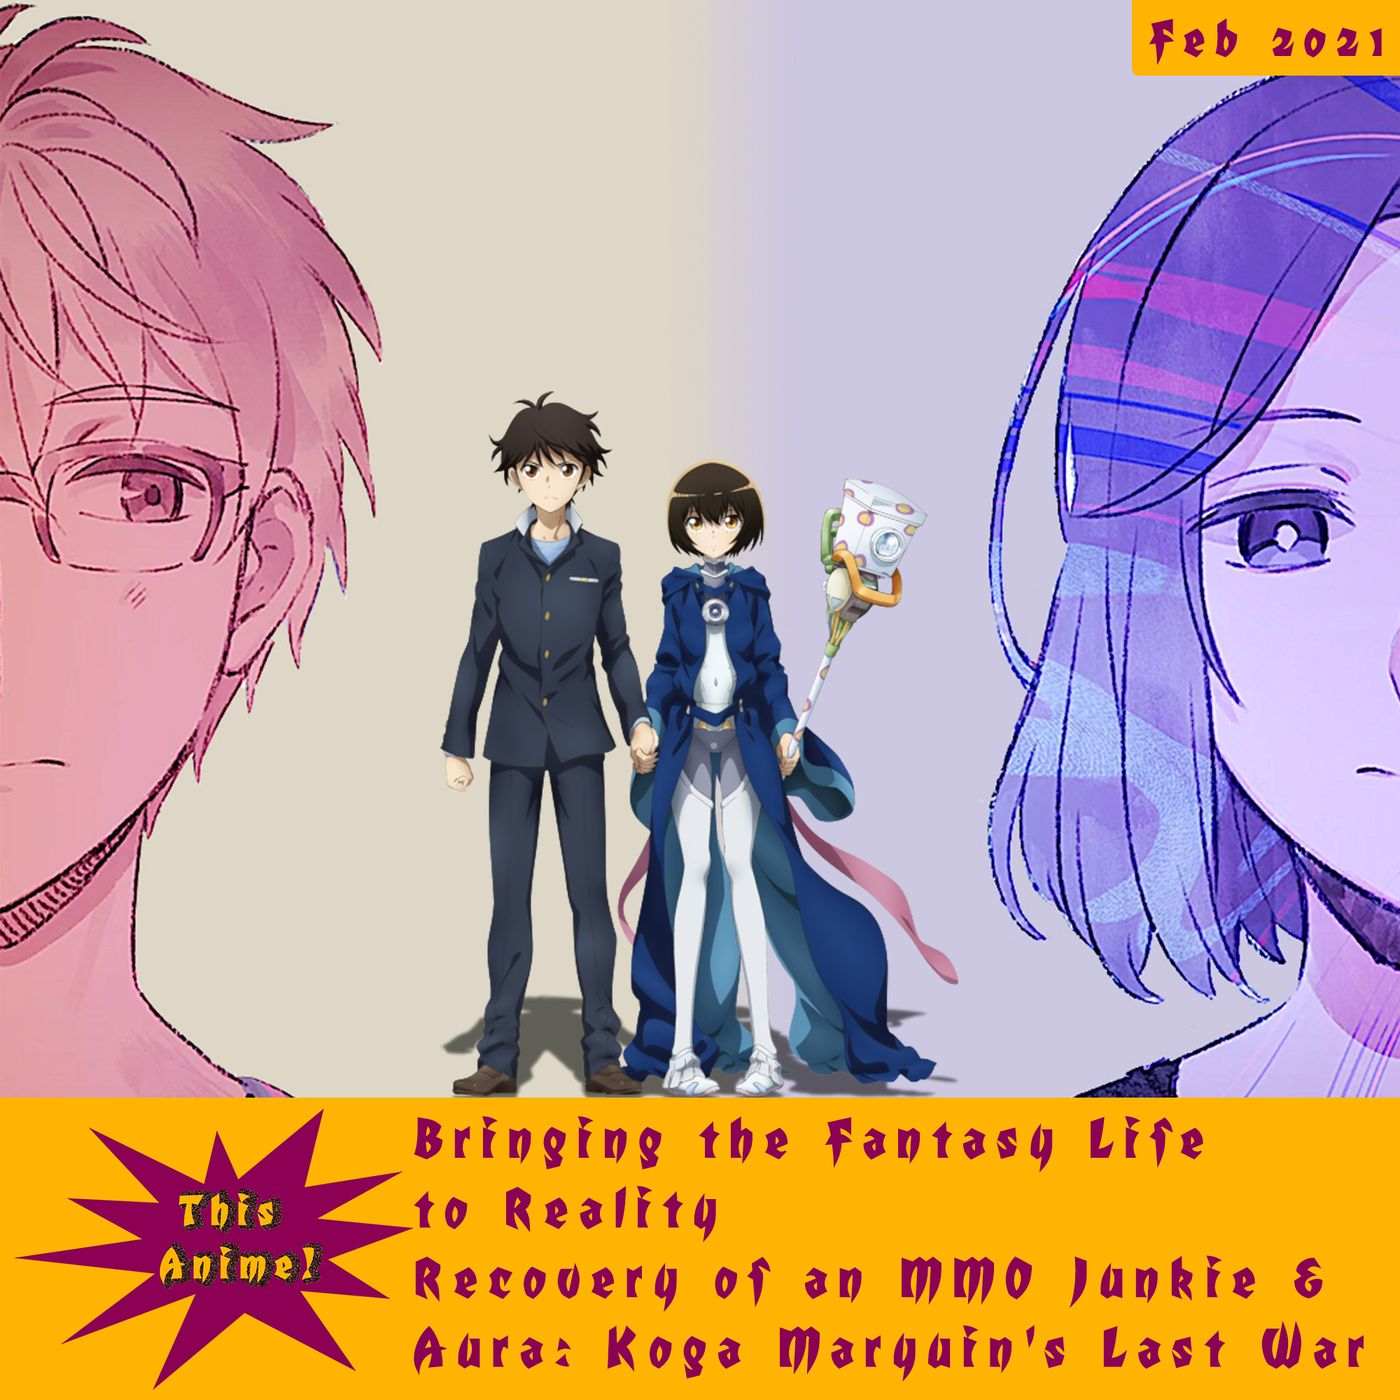 This Anime - Bringing the Fantasy Life to Reality: Recovery of an MMO Junkie & Aura: Koga Maryuin's Last War (Feb 2021)